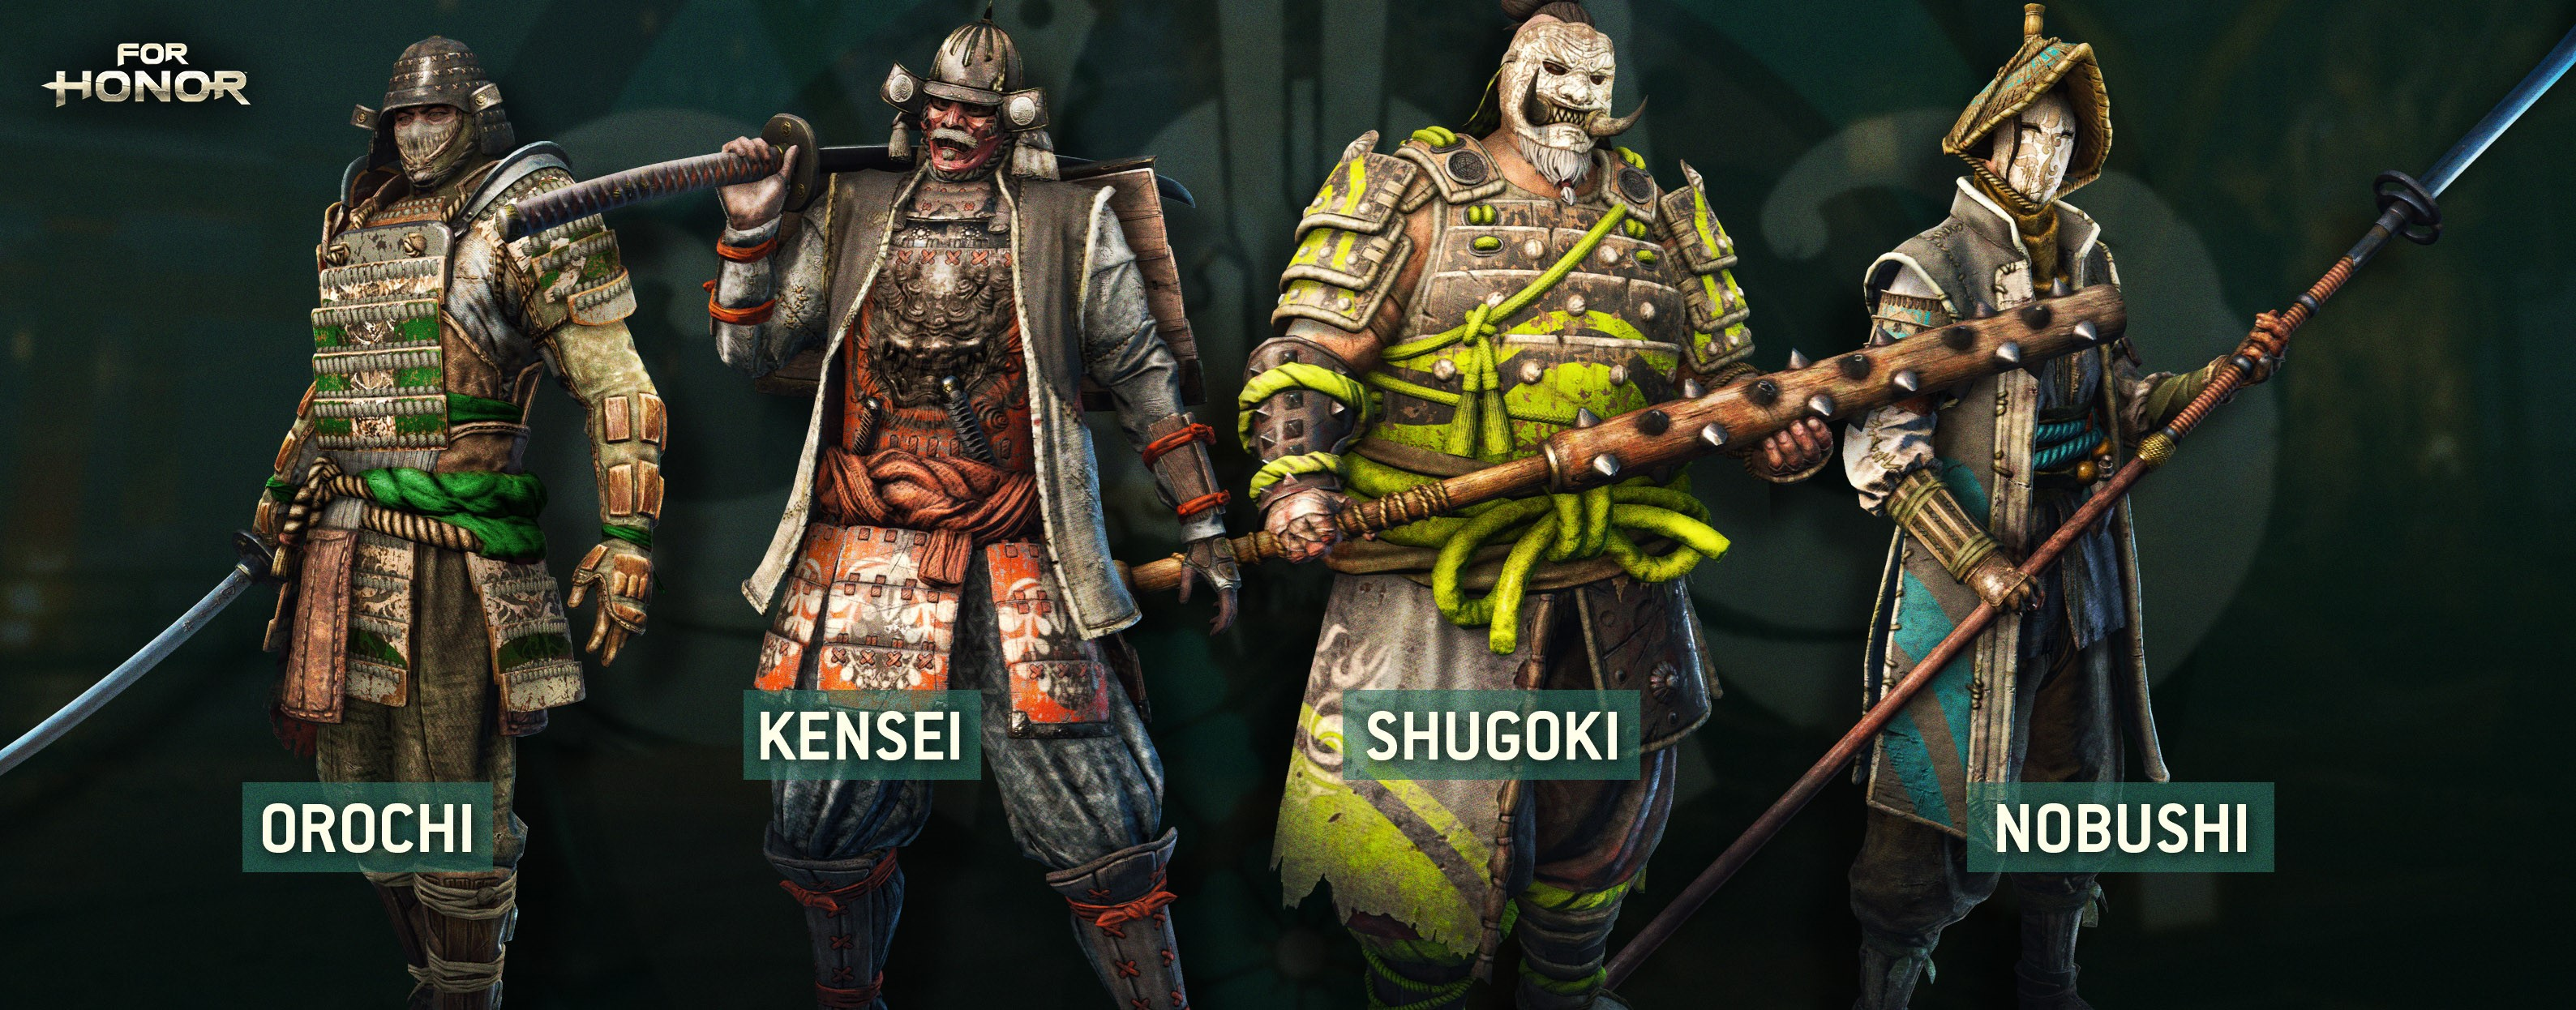 FOR HONOR DELUXE Ed.(Uplay KEY) +НАСЛЕДИЕ +Deluxe Pack